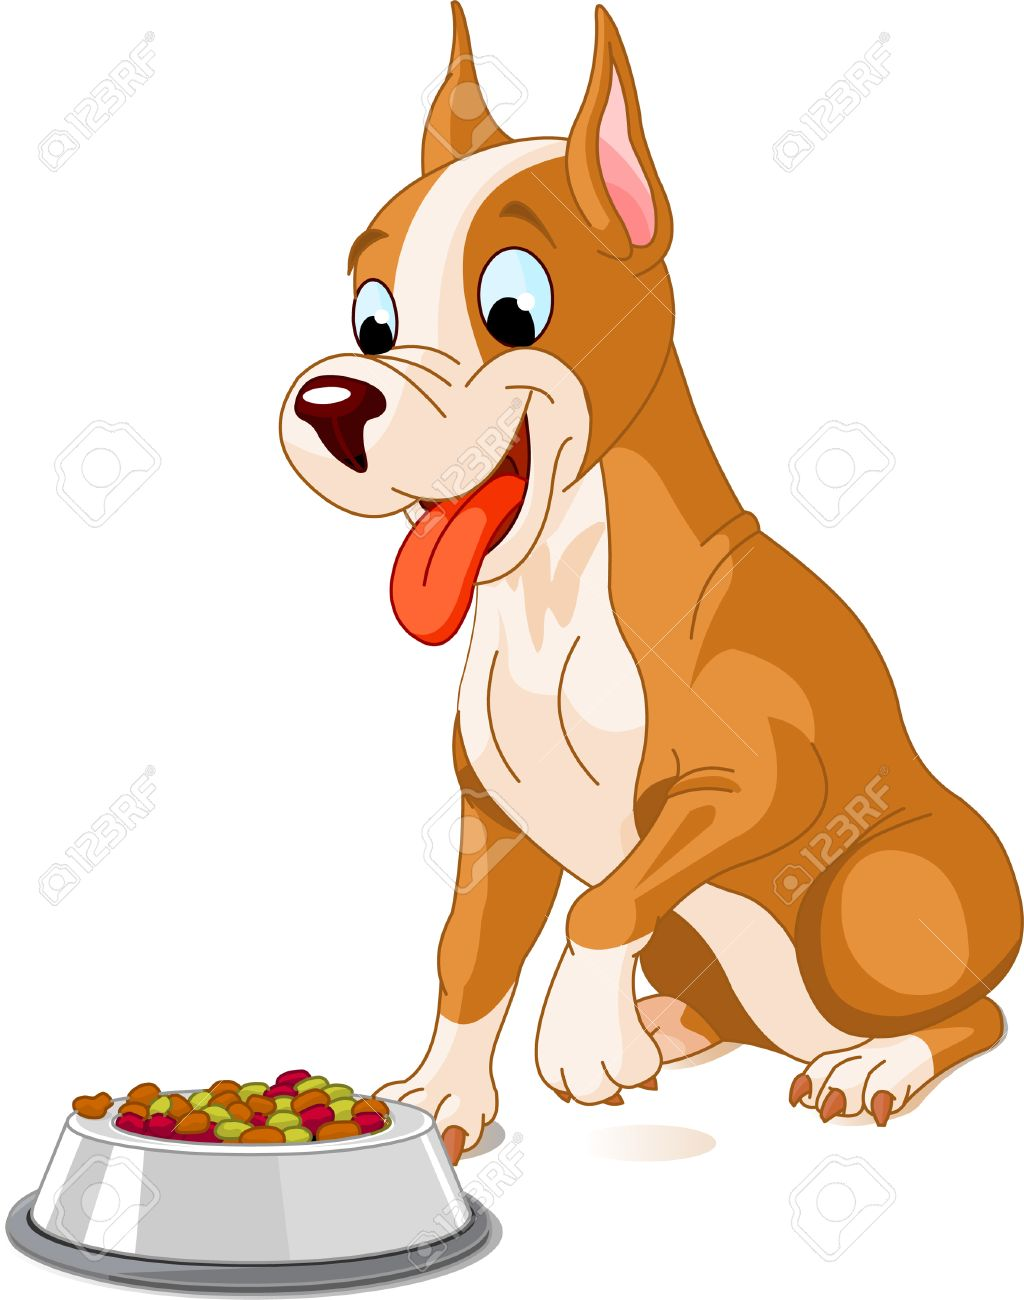 Dog Eating Clipart Hungry Dog About to Eat a Bowl